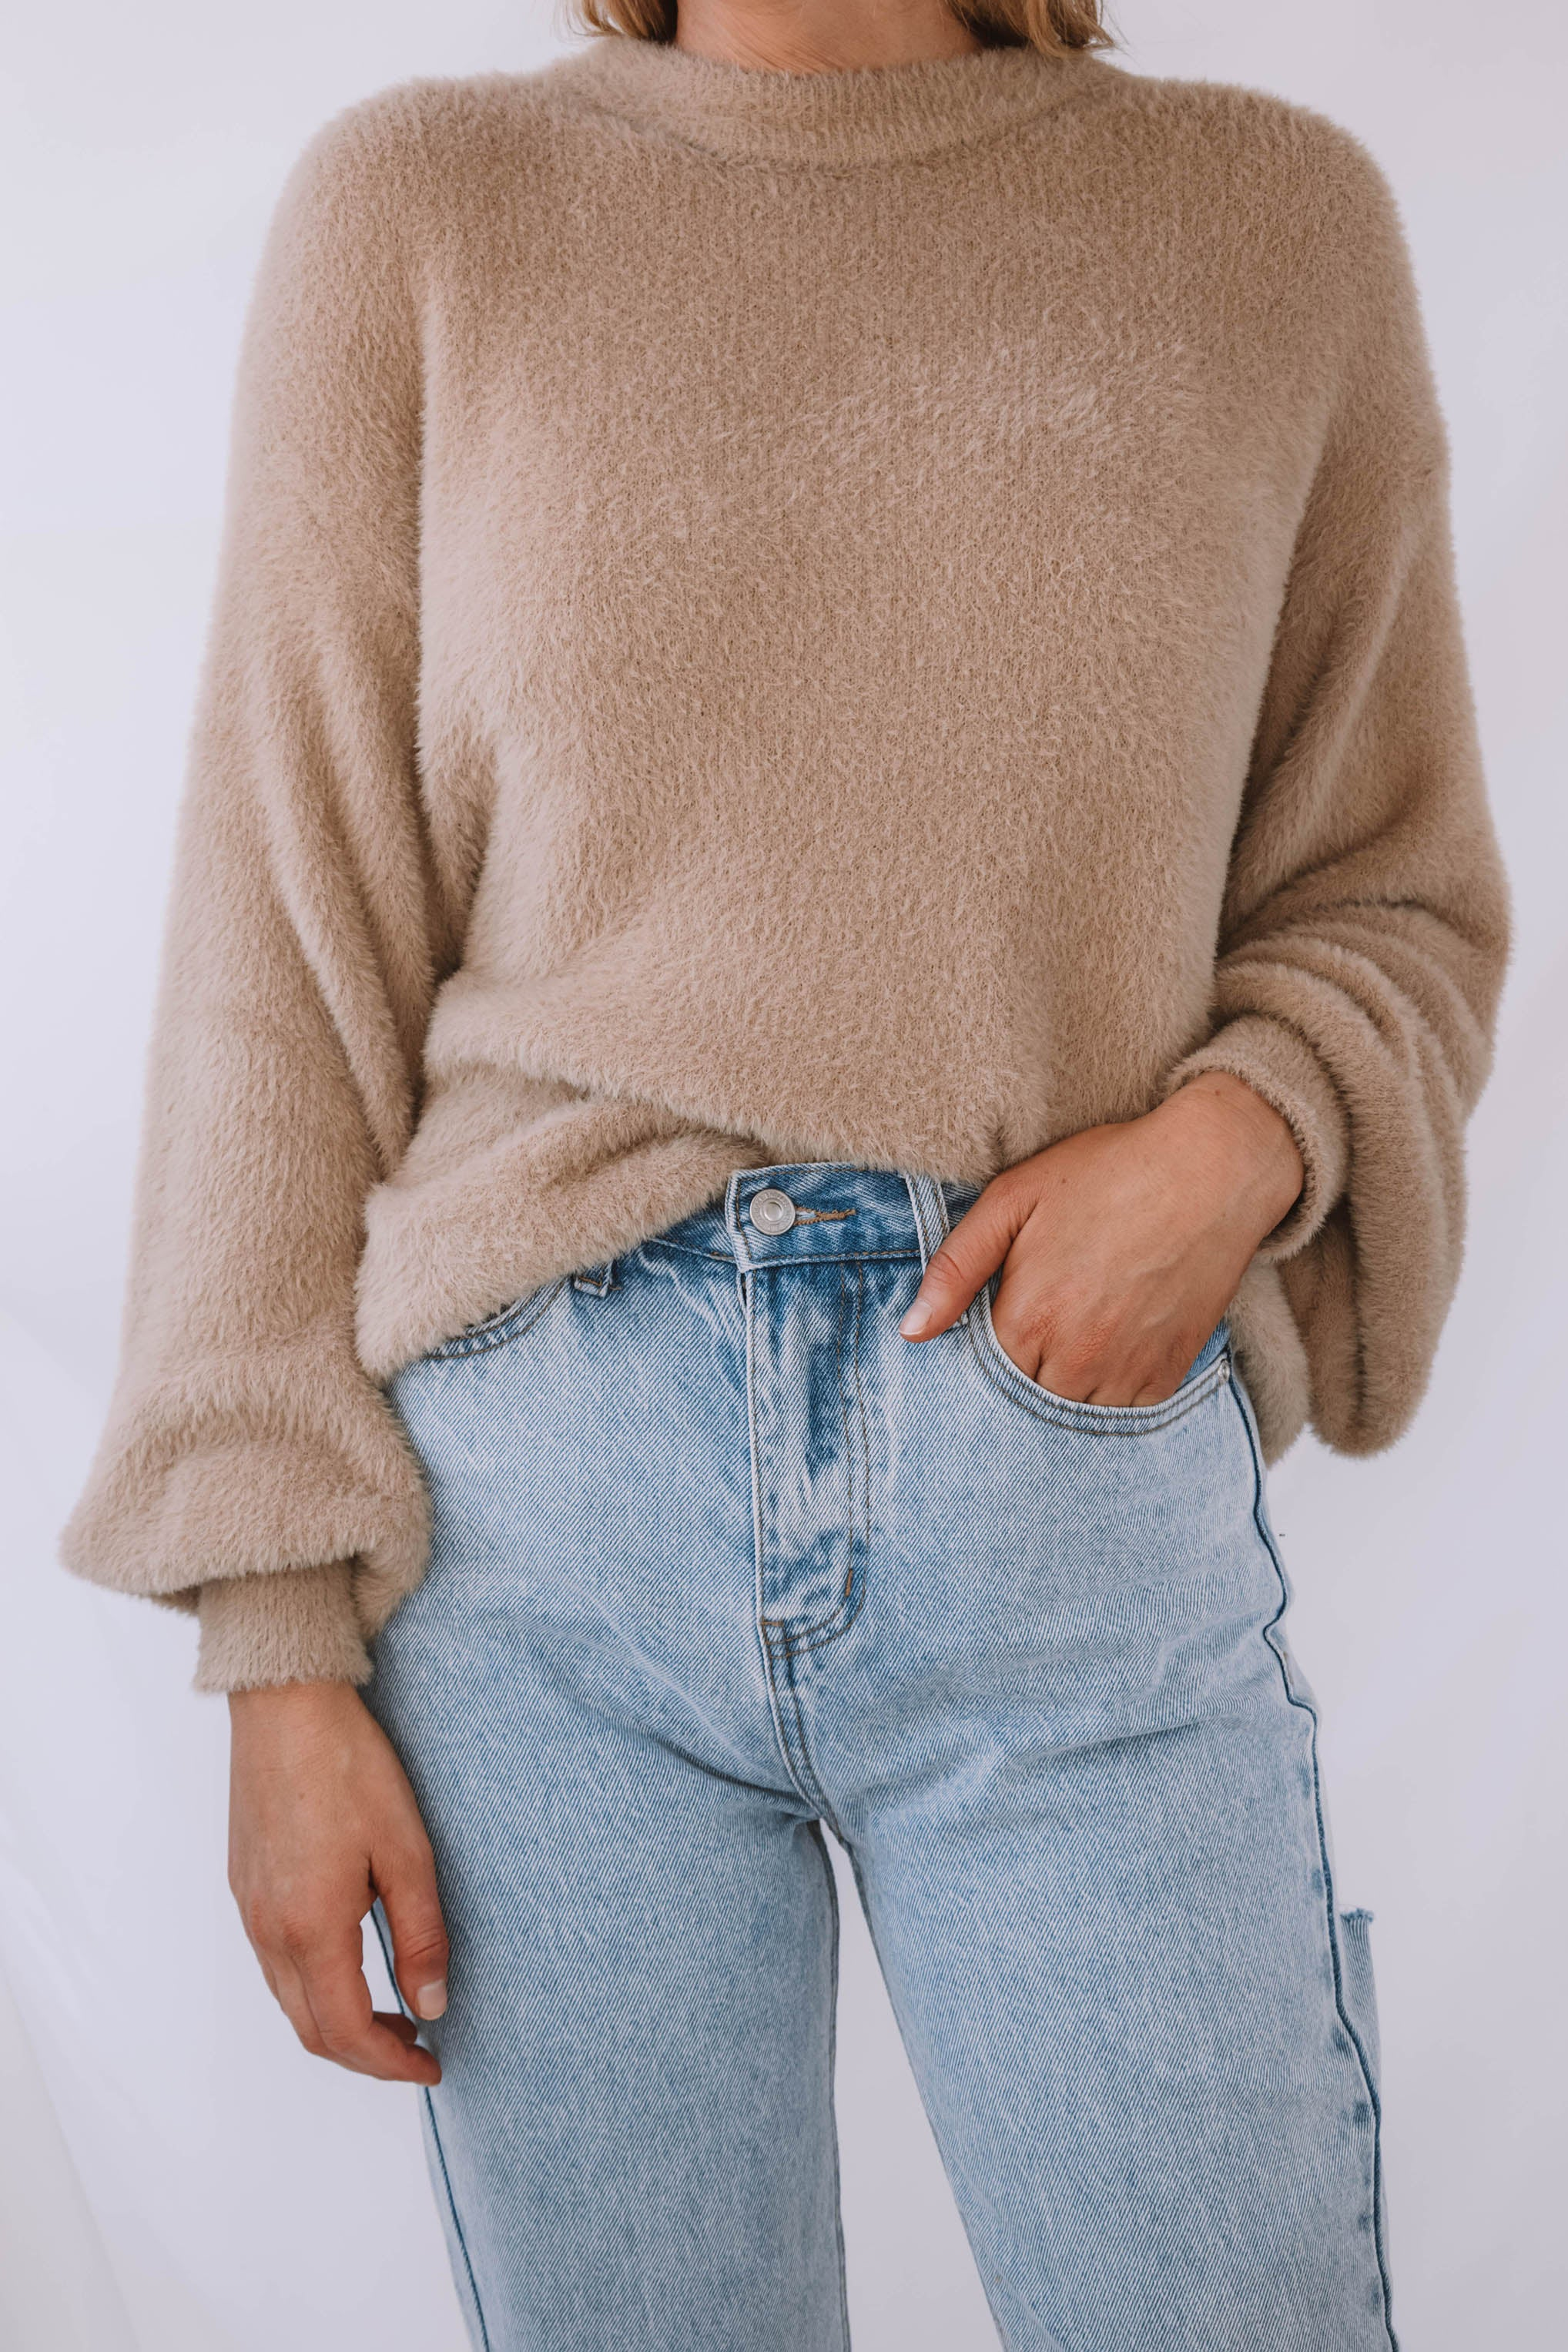 Whitehall Fuzzy Crewneck Sweater